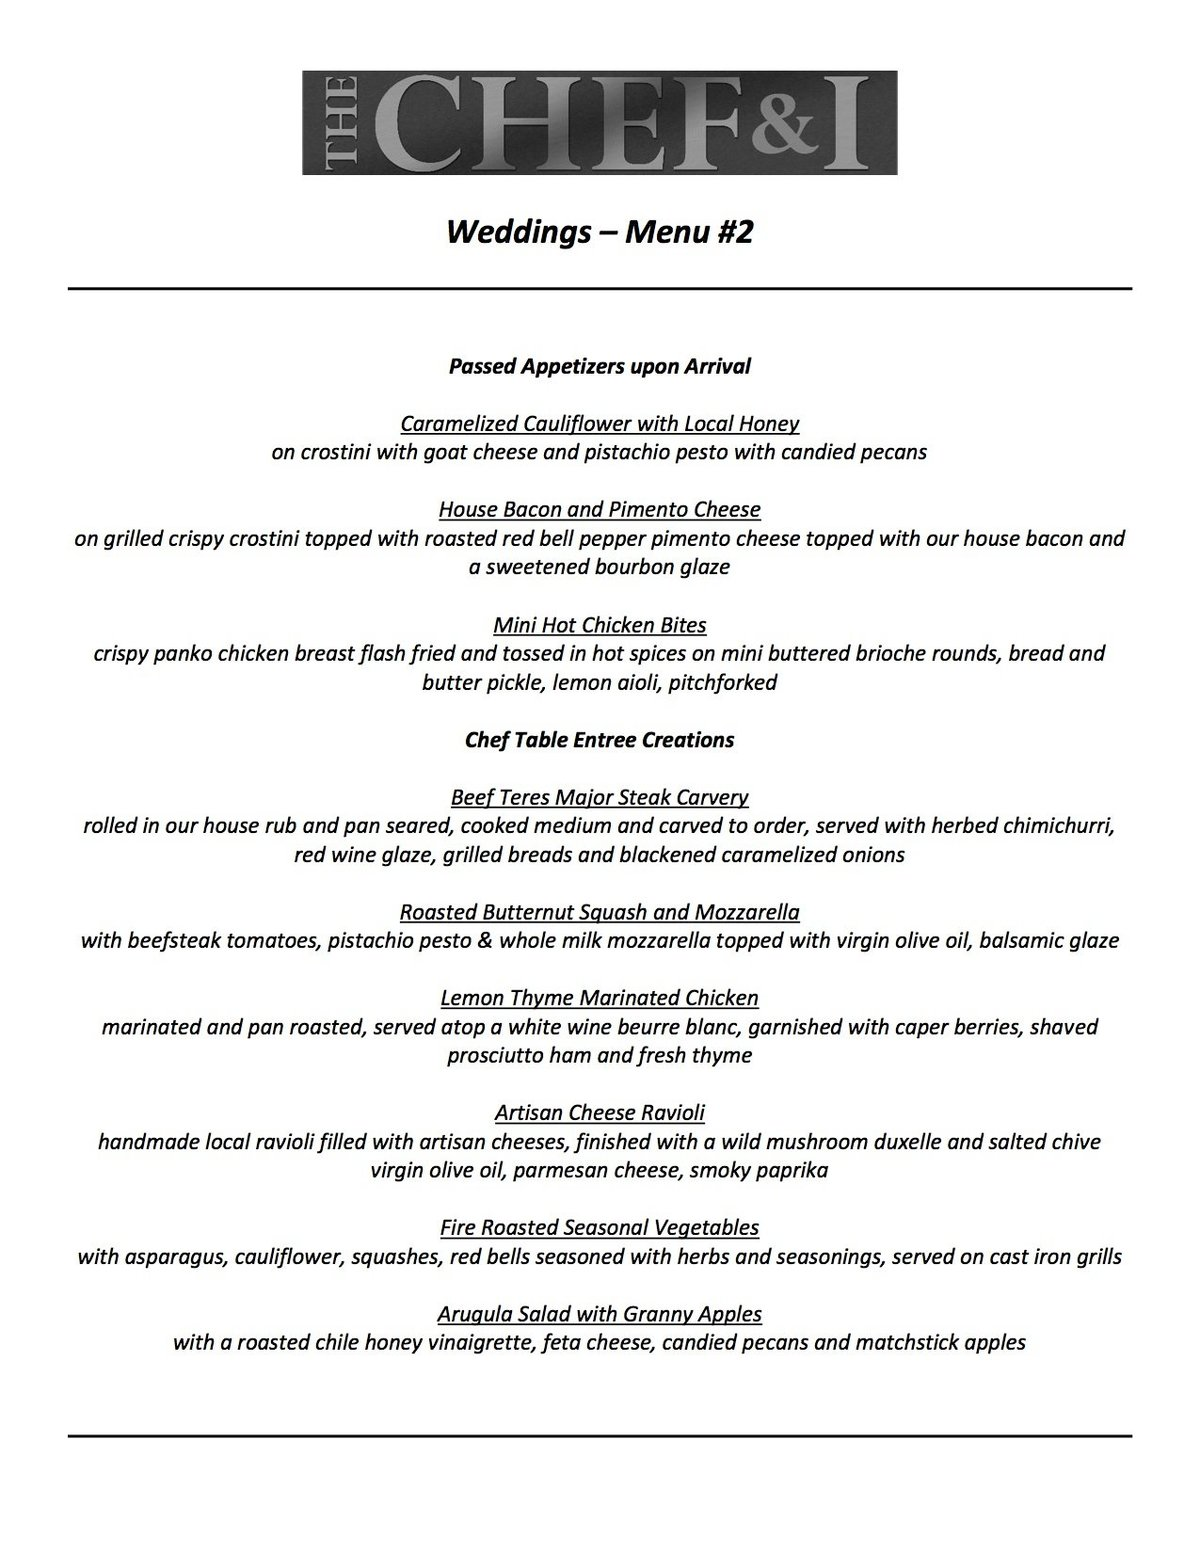 Weddings Menu 2